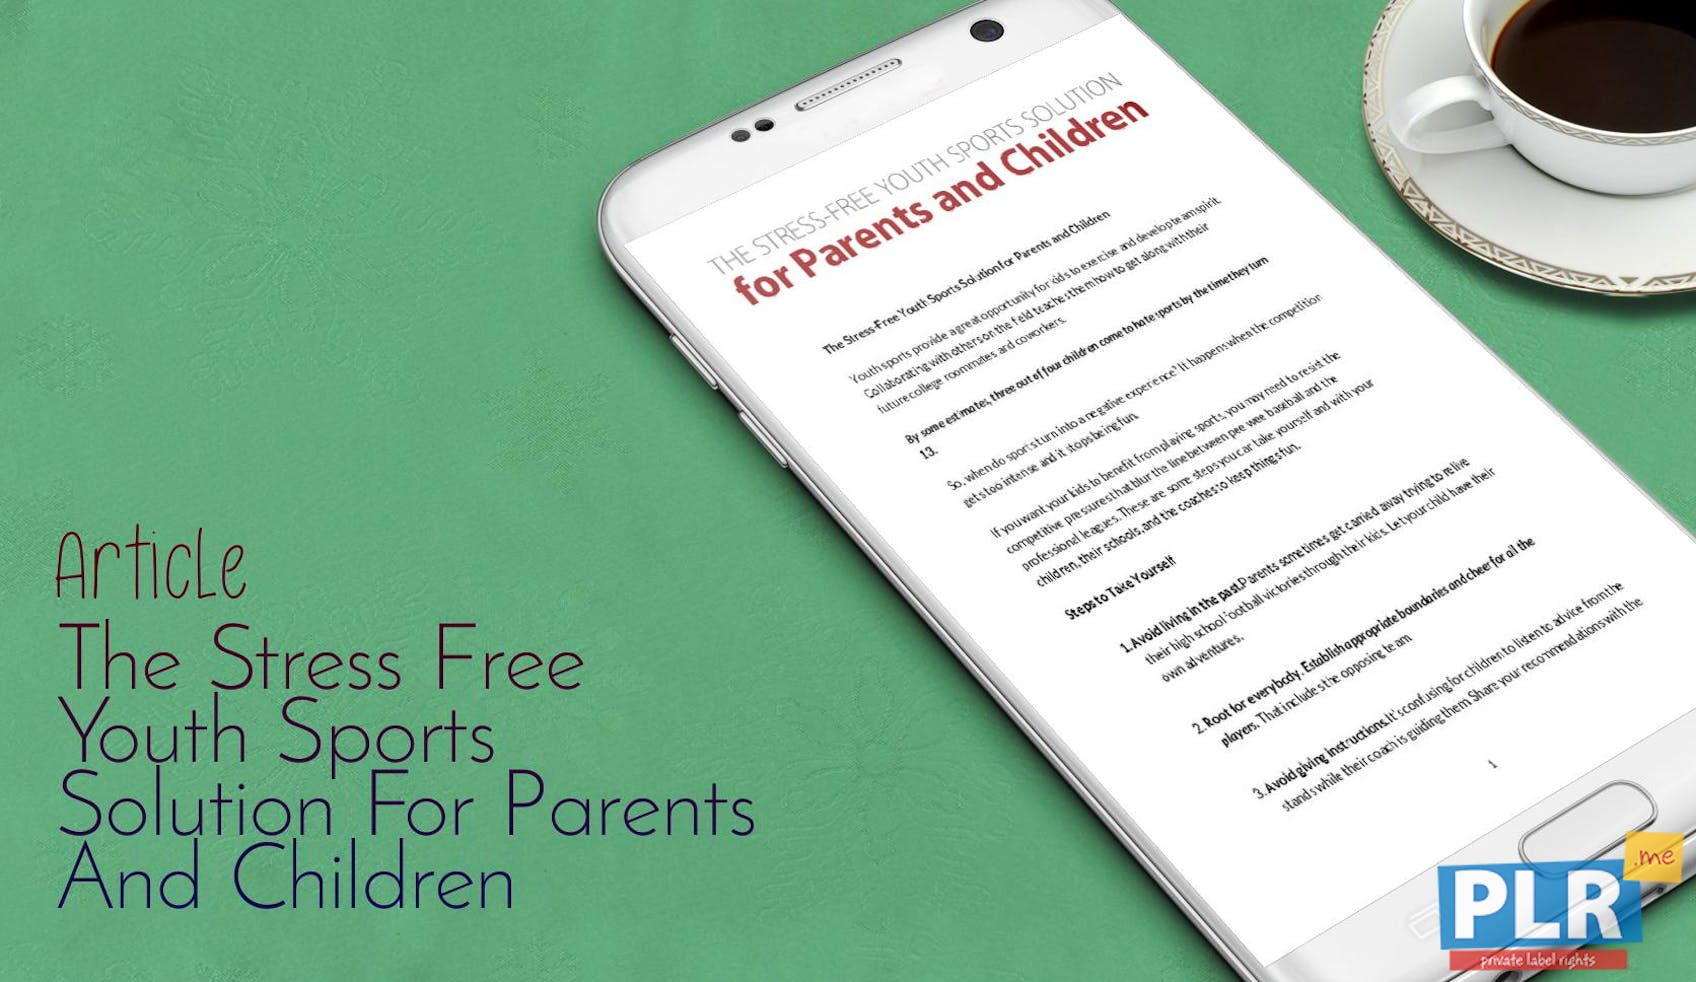 The Stress Free Youth Sports Solution For Parents And Children